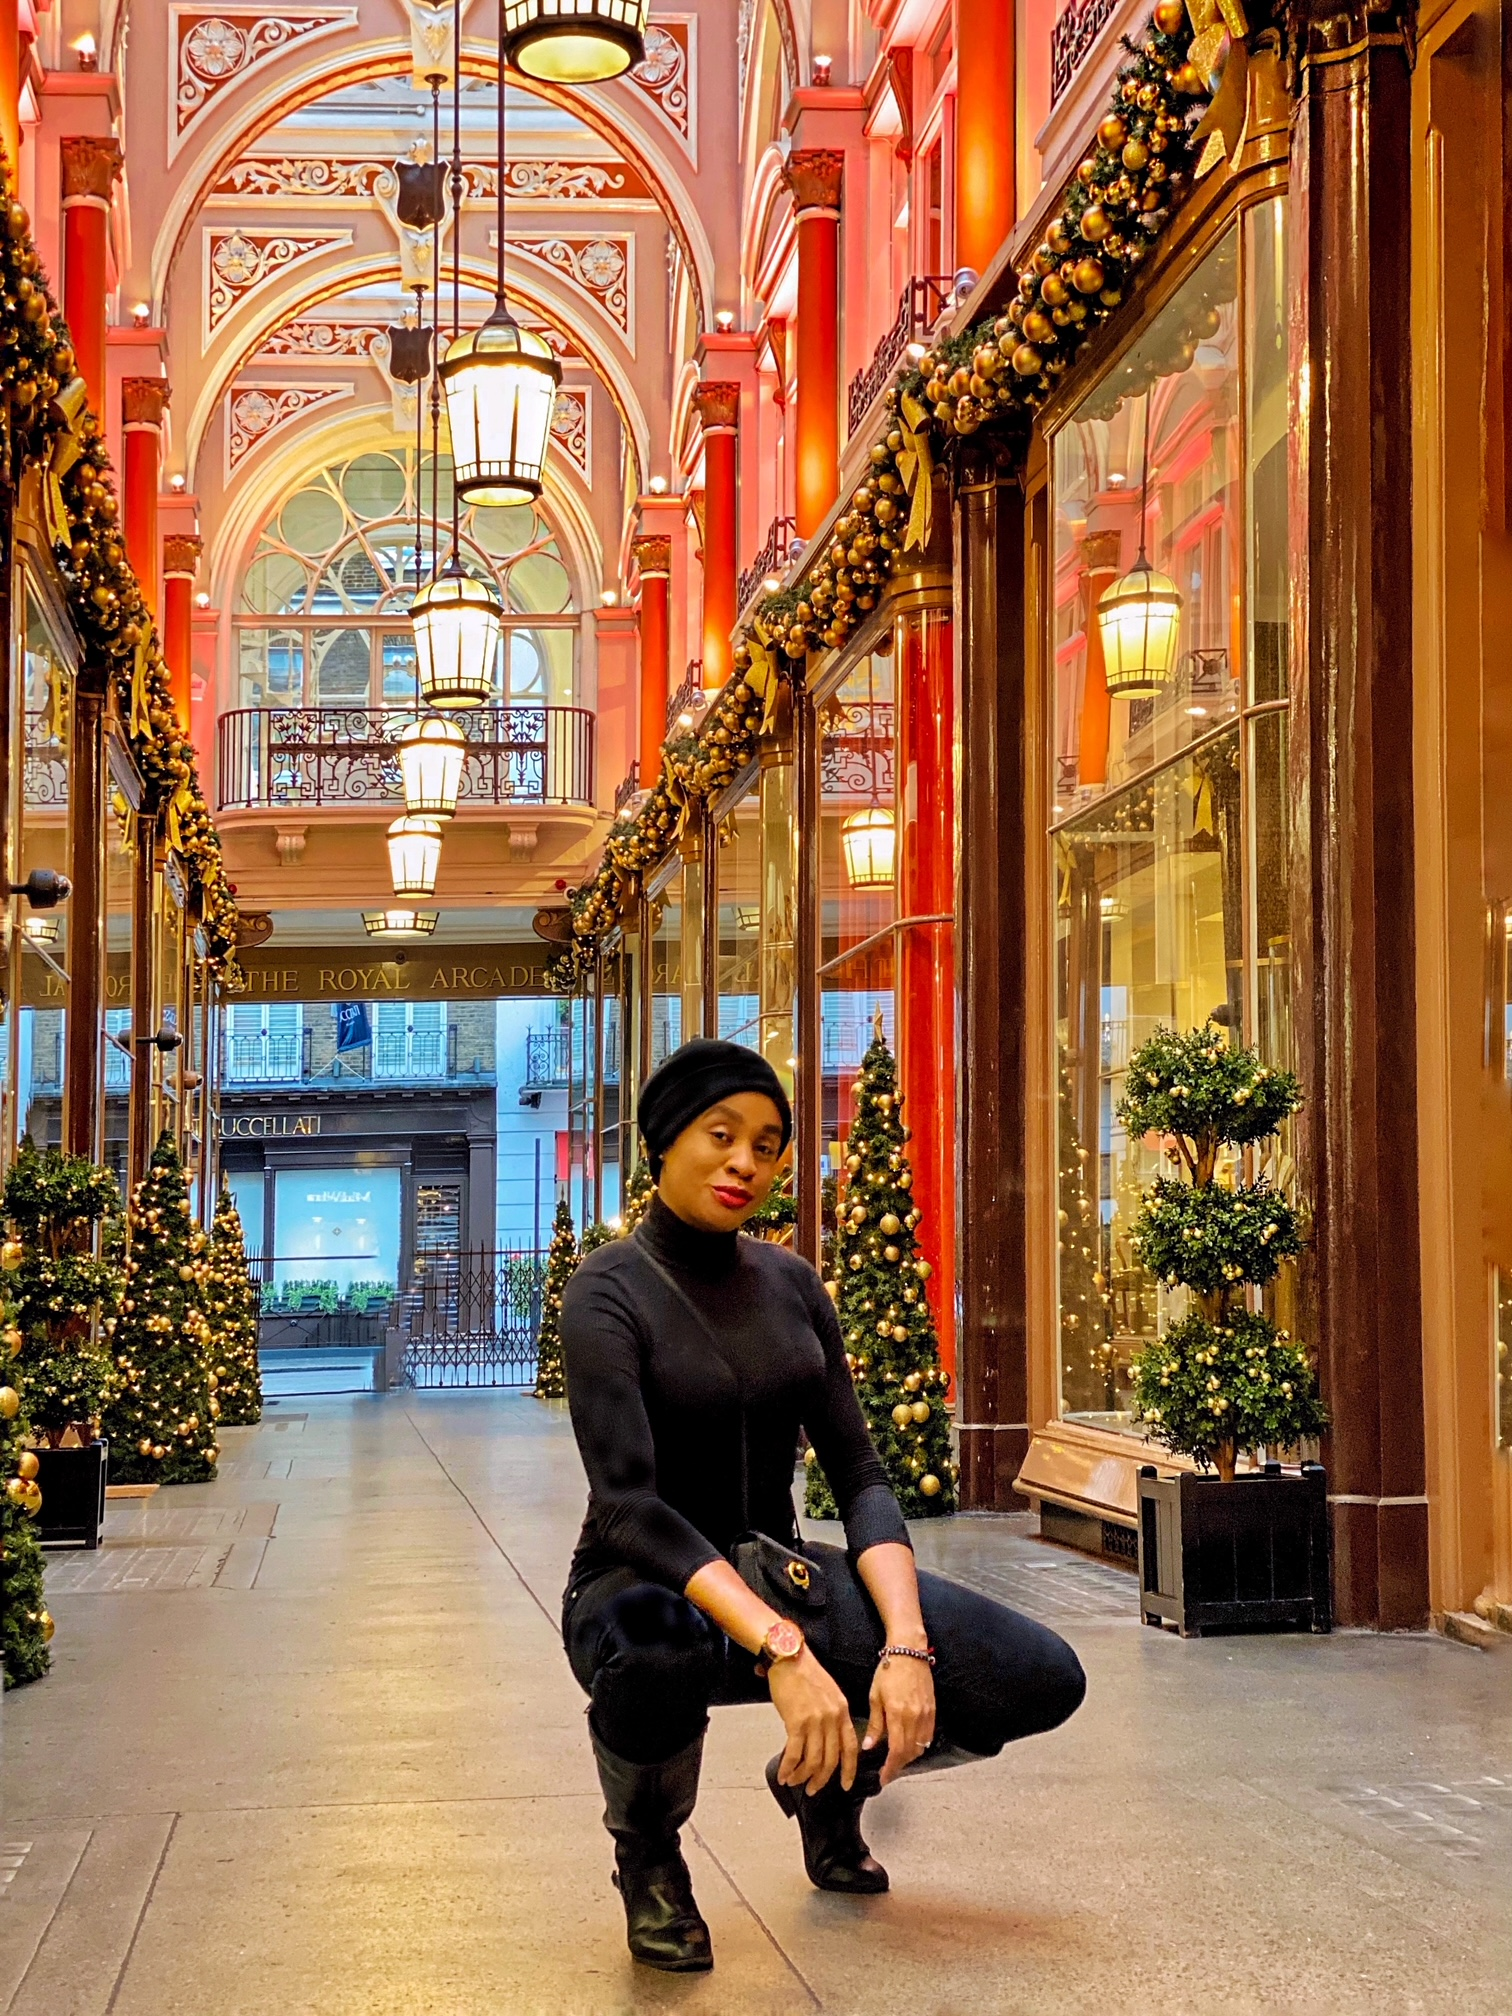 Explore London in Christmas – Shopping Arcades To Visit